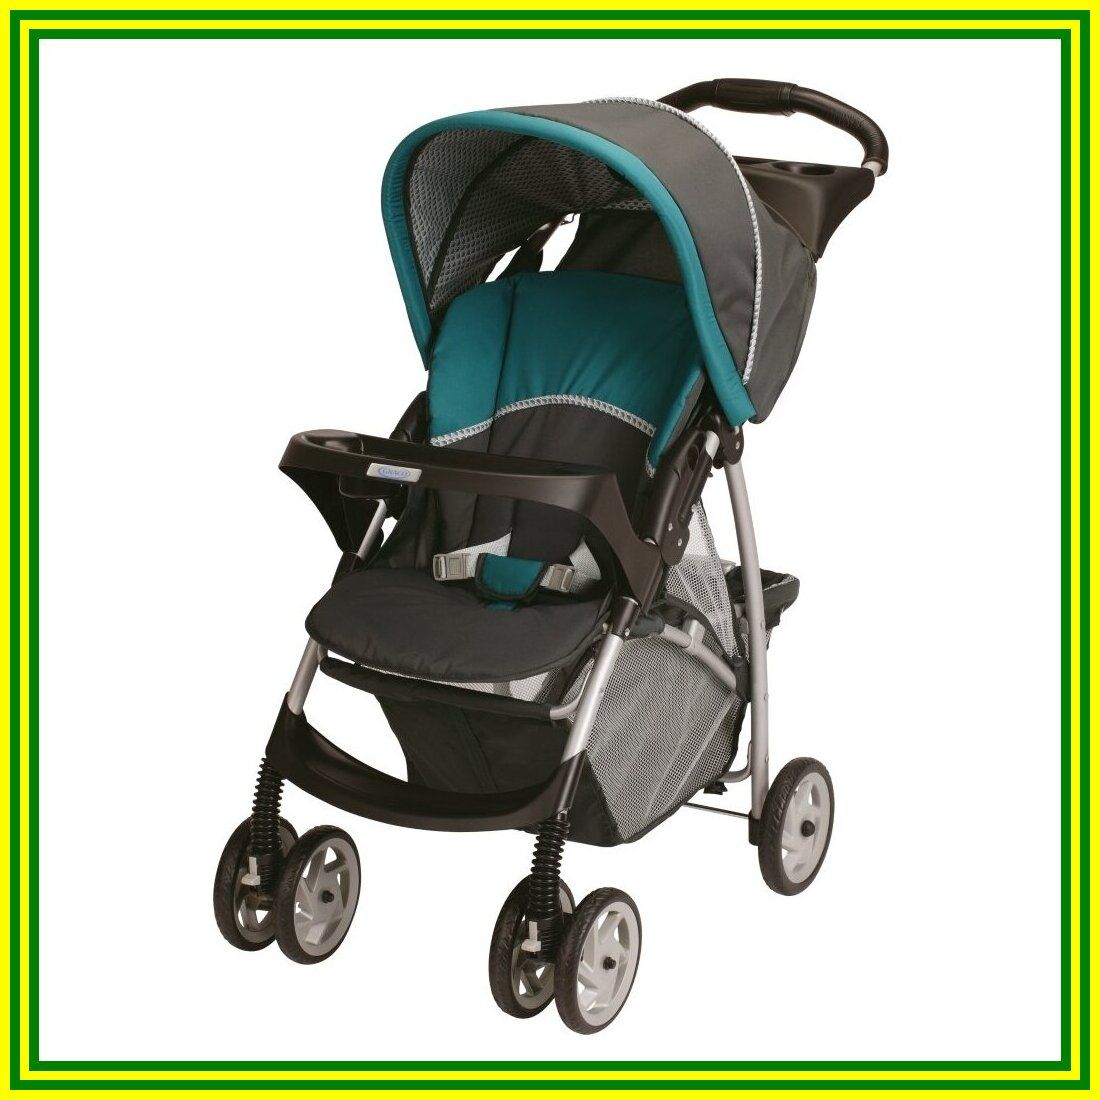 86 reference of jeep infant car seat and stroller in 2020